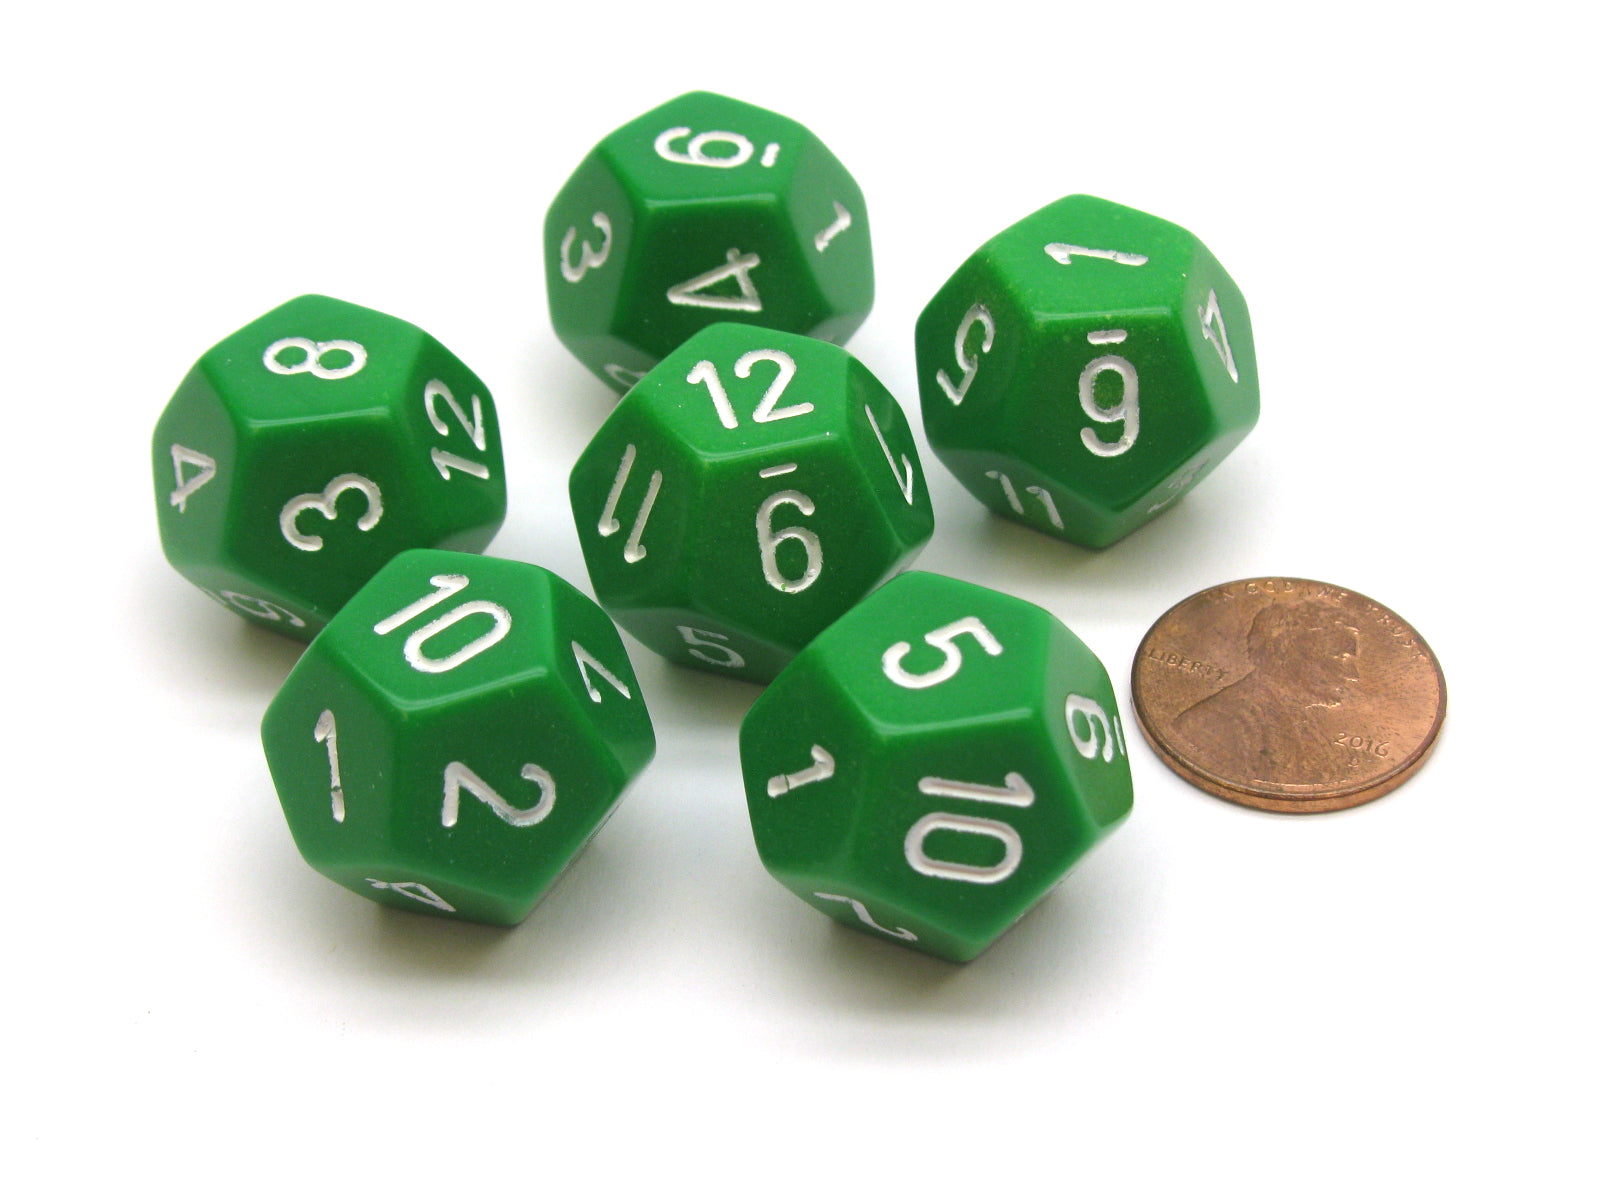 Opaque 18mm 12 Sided D12 Chessex Dice, 6 Pieces -  Green with White